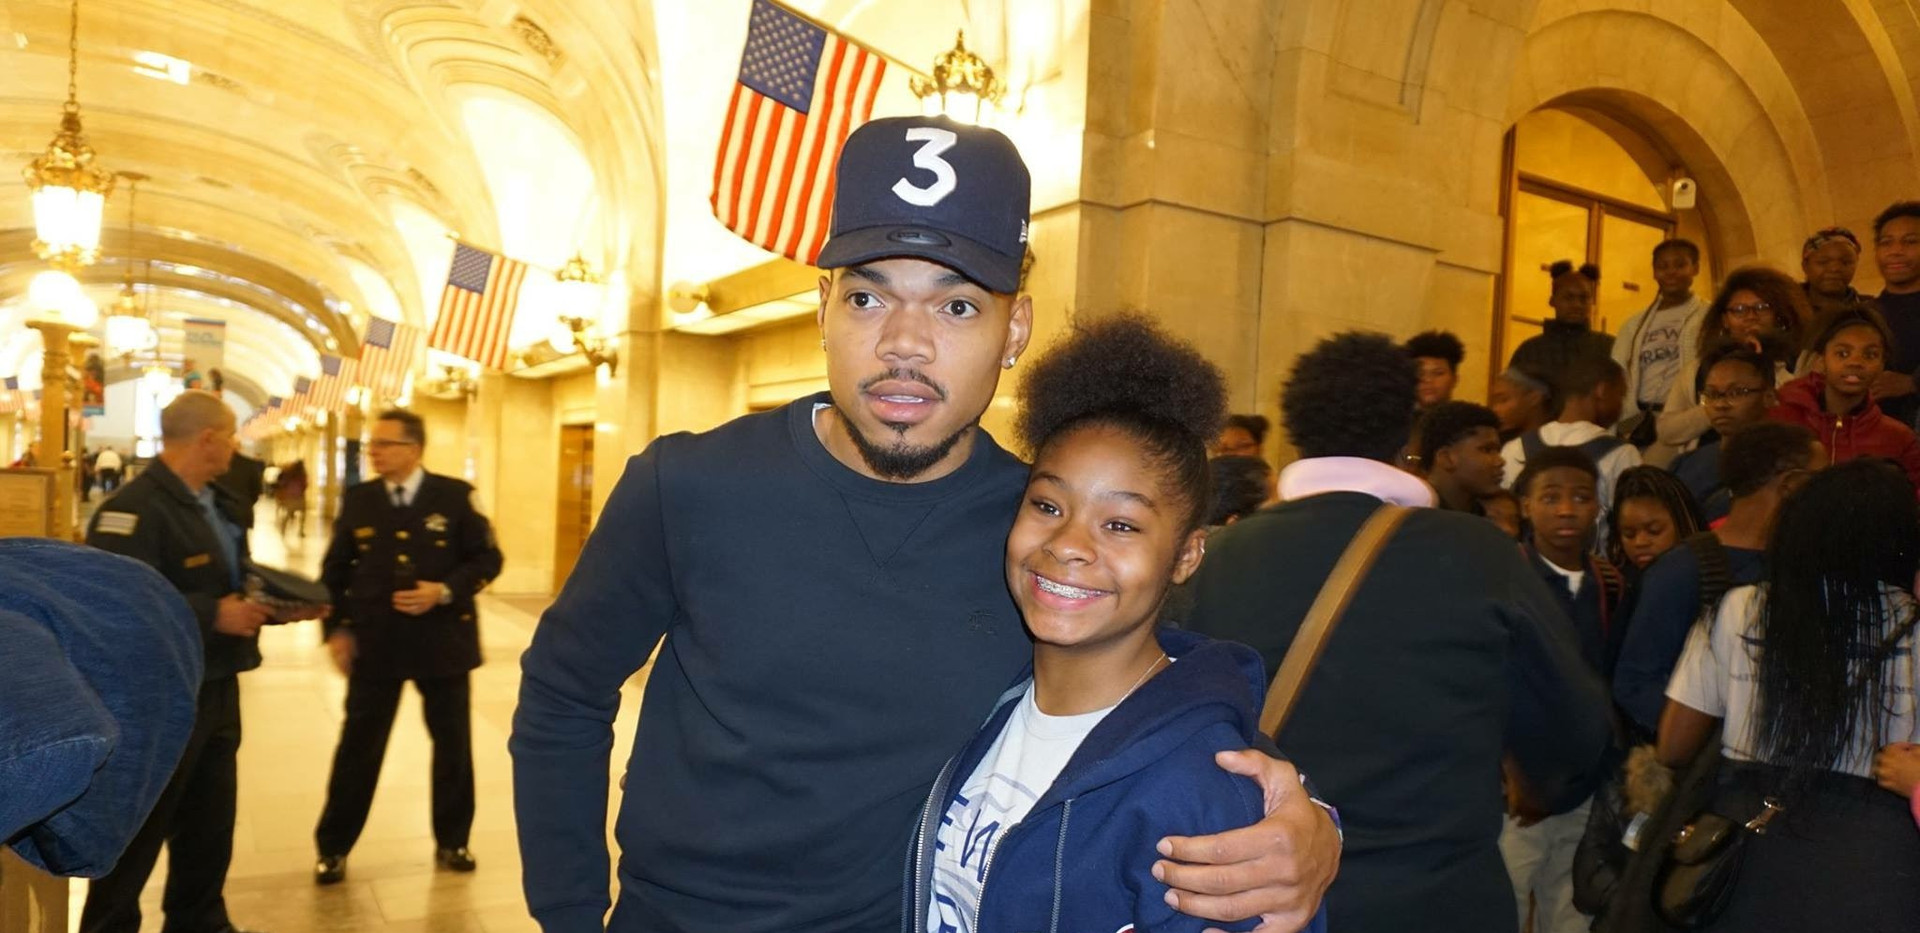 At one of their visits to City Council, students meet Chance the Rapper, seen here with student leader Mariyea Crawford. Crawford served on the Racial Equity Committee for the REIA done on this issue.